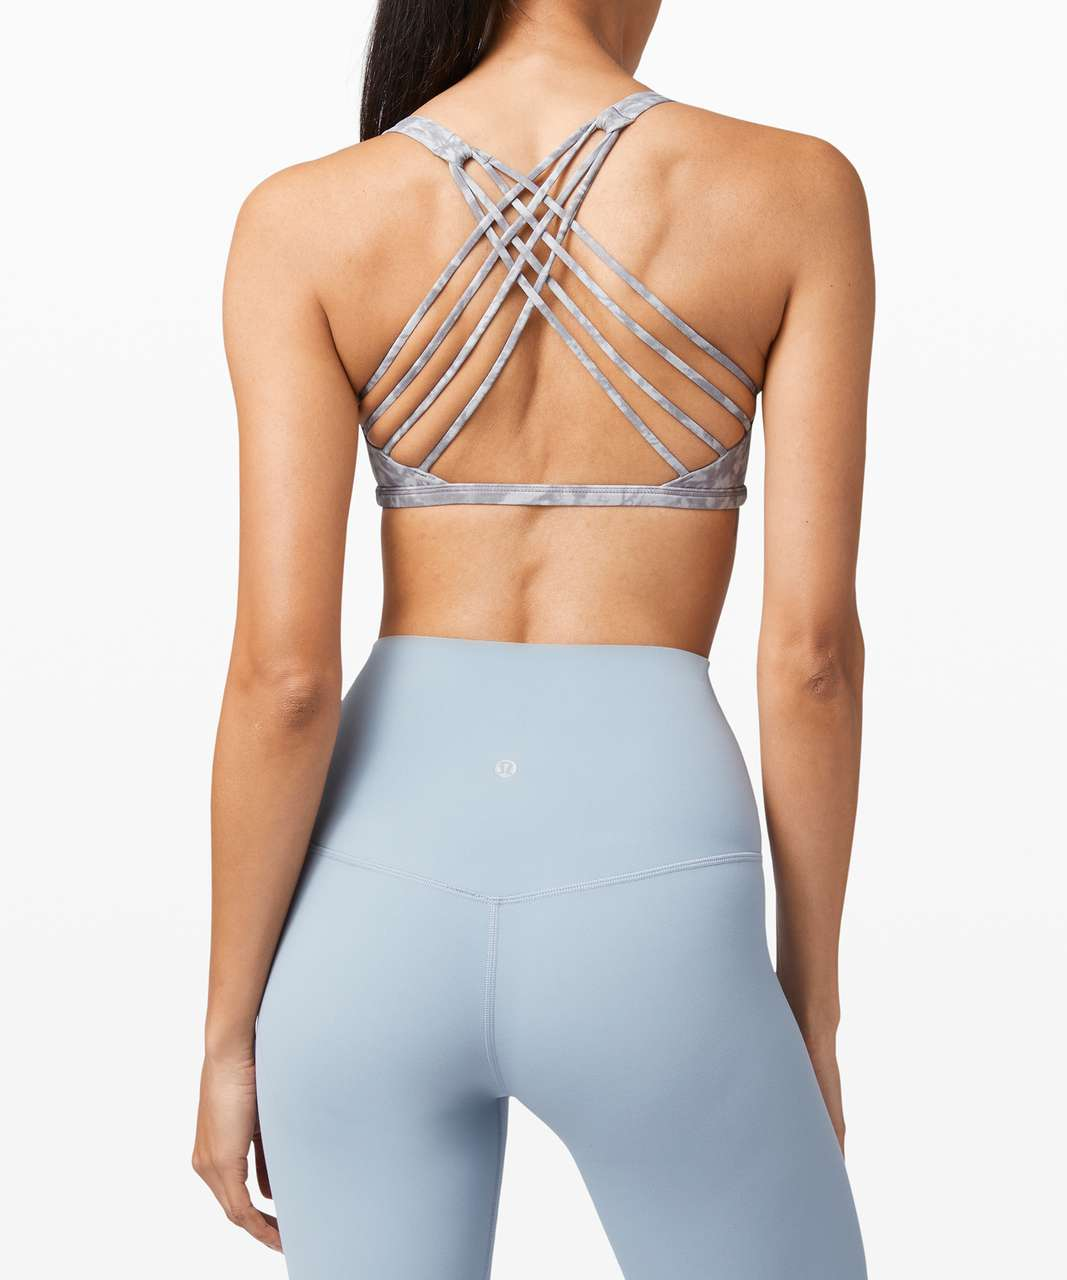 Lululemon Free To Be Bra Wild *Light Support, A/B Cup - Summer Shade Ice Grey Multi